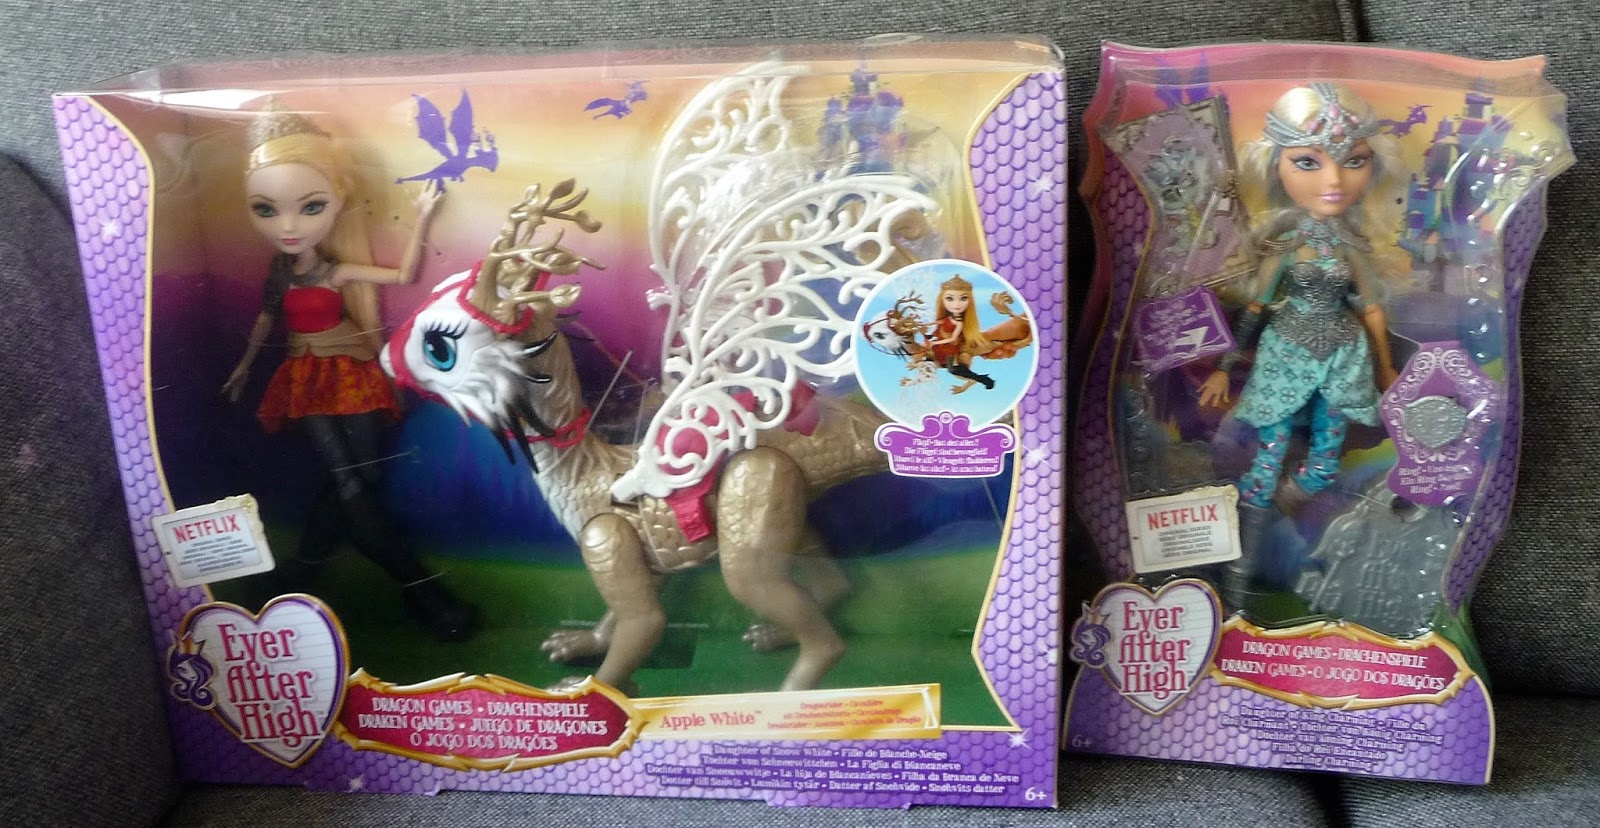 EVER AFTER HIGH DOLL DRAGON GAMES APPLE WHITE HEAD ONLY FOR REPLACEMENT OR OOAK